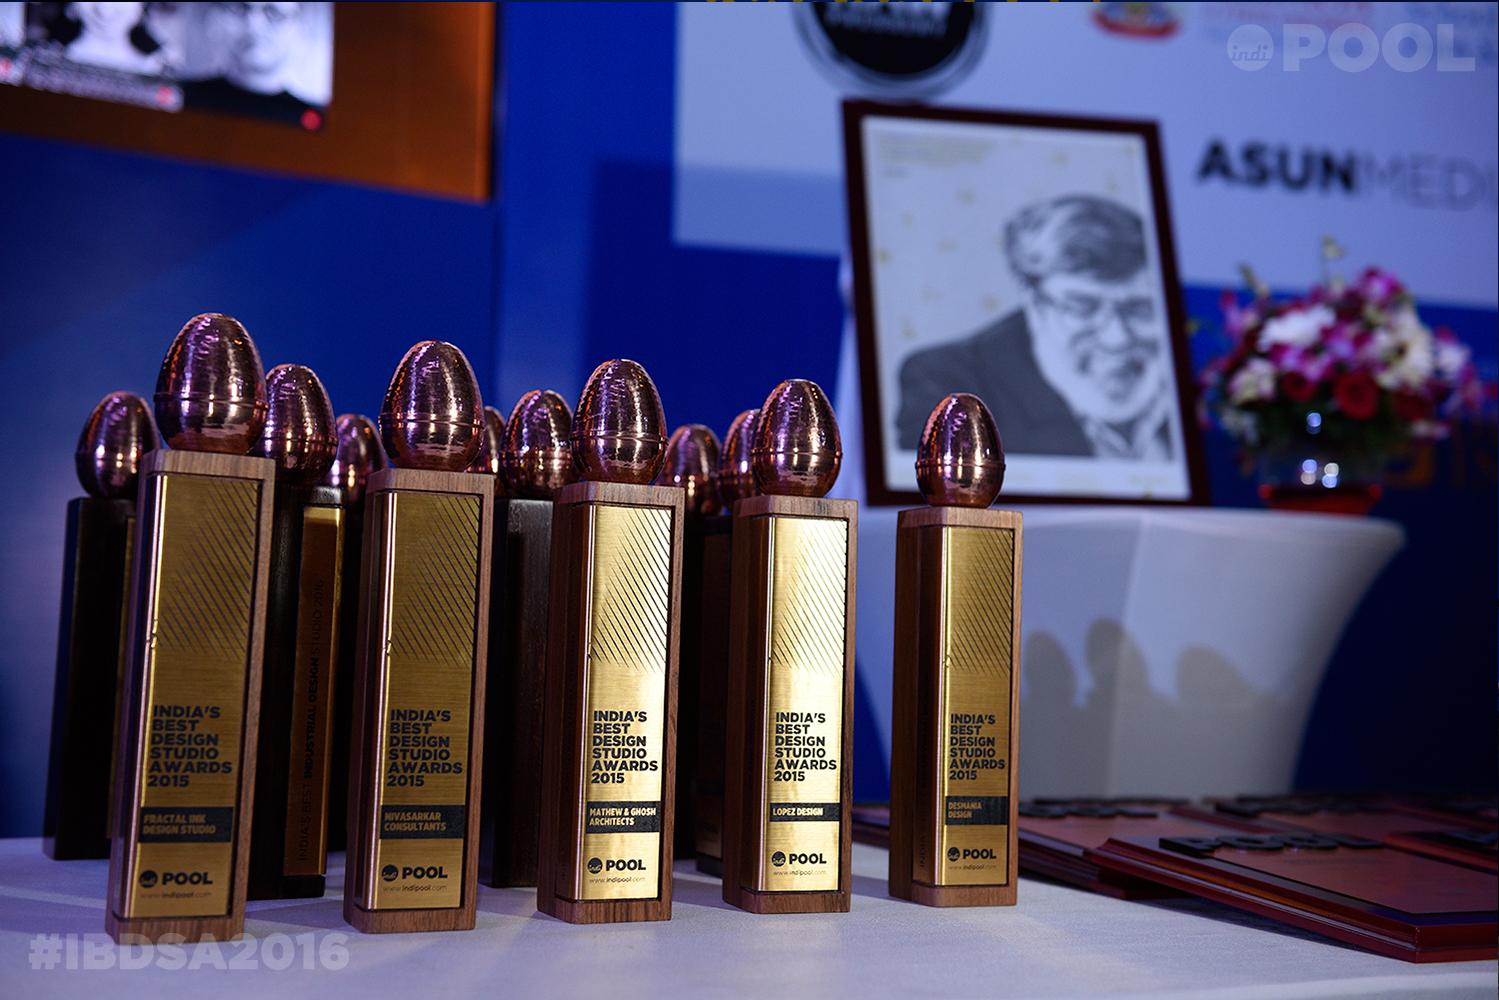 India's Best Design Studio Awards Trophies